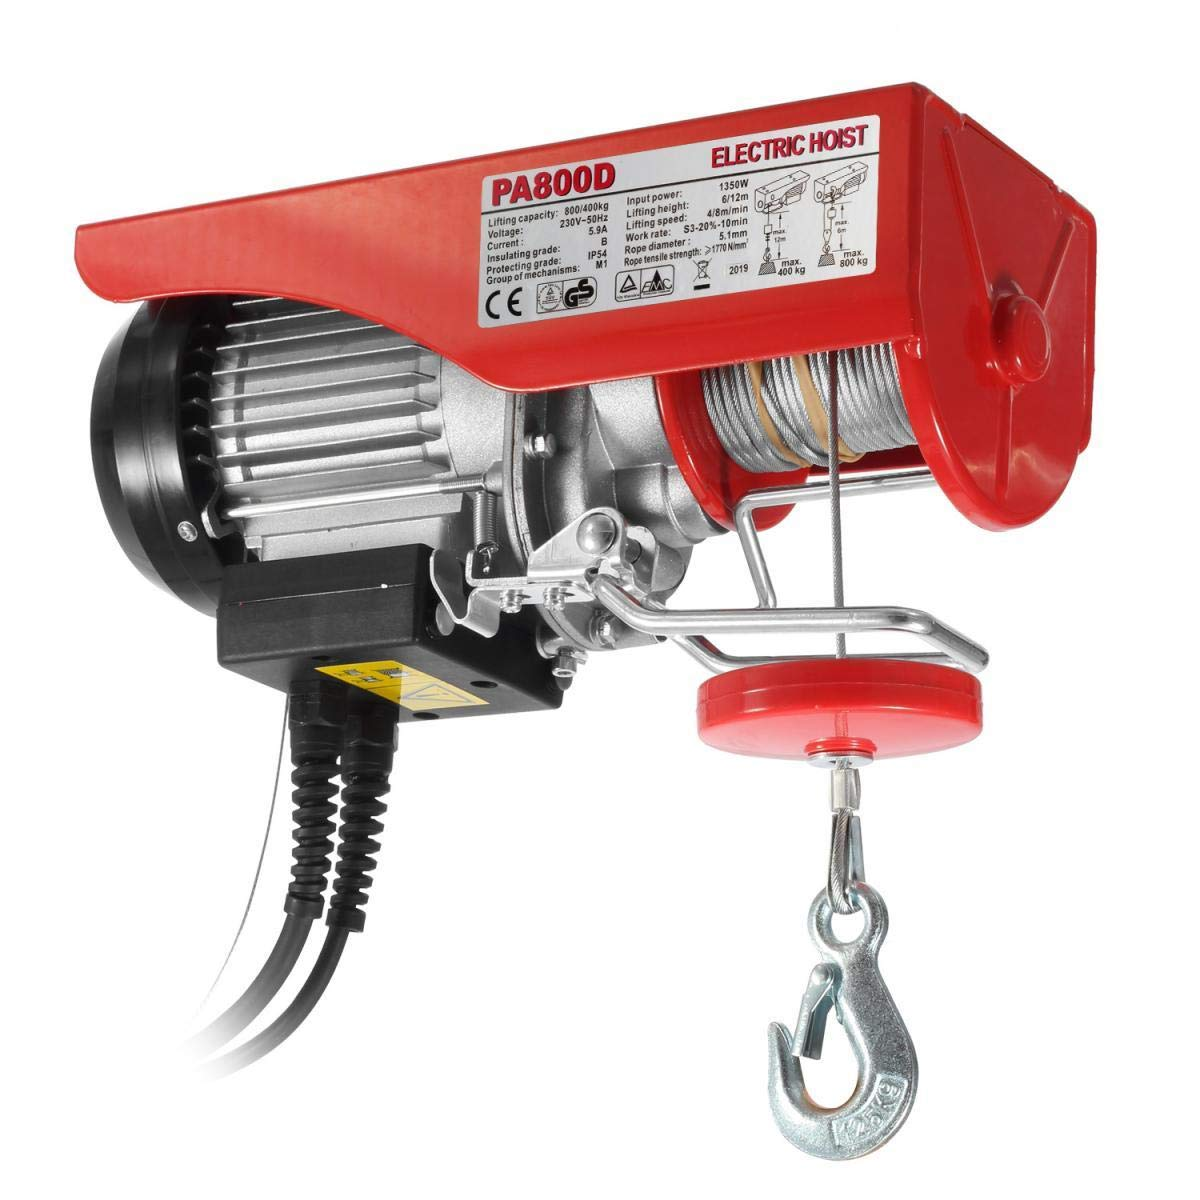 Zinc-Plated Steel Wire Overhead Crane Garage Ceiling Pulley Winch w//Premium Towing Securing Straps Partsam 400//800kg Electric Hoist Lifting Crane Remote Control Power System